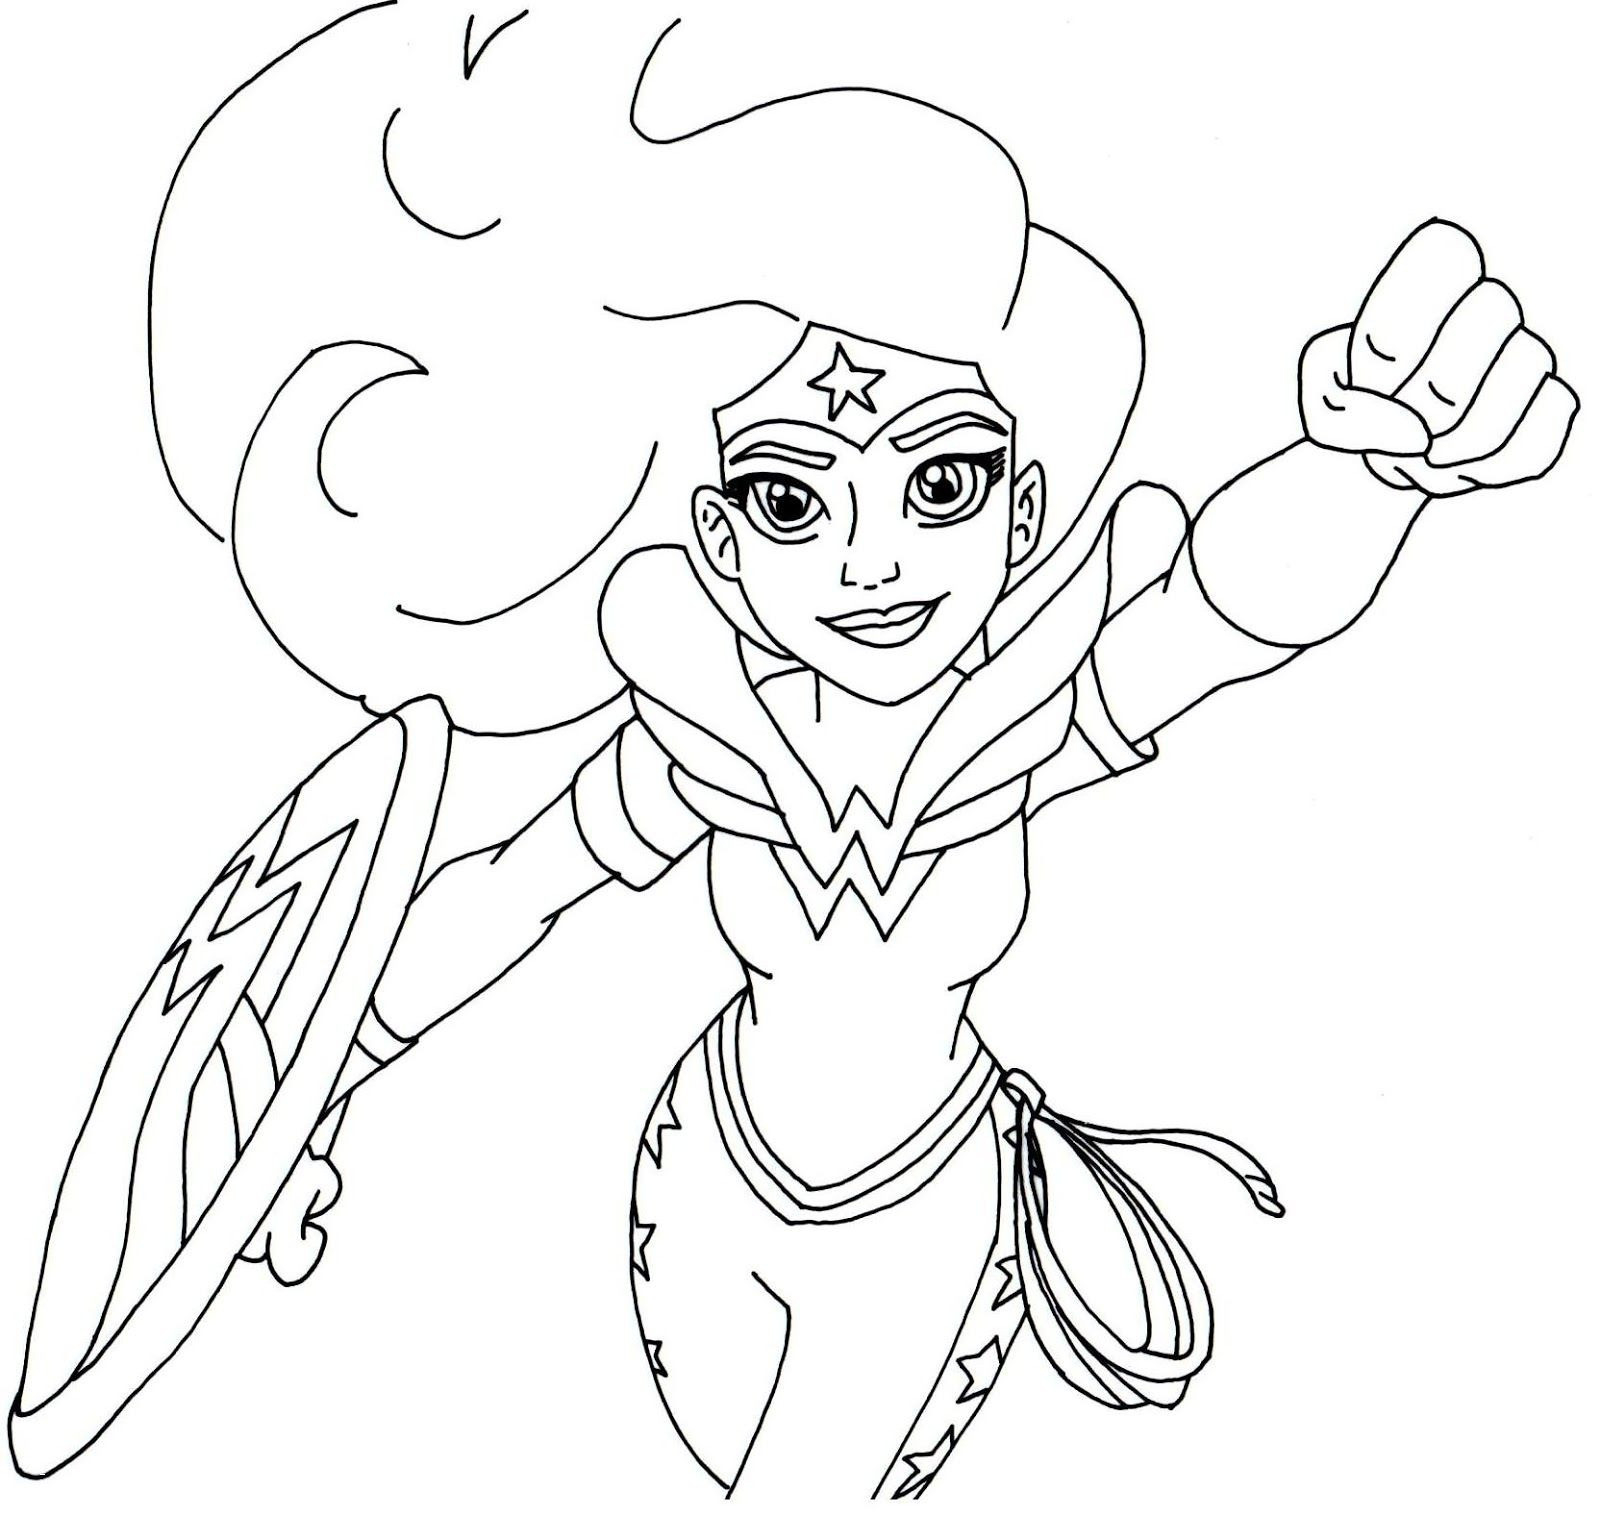 super hero printable coloring pages Collection-Published February 27 2018 at 1600 — 1515 in Superheroes Easy to Draw Superheroes Easy to Draw Superhero Printable Coloring Pages 10-f